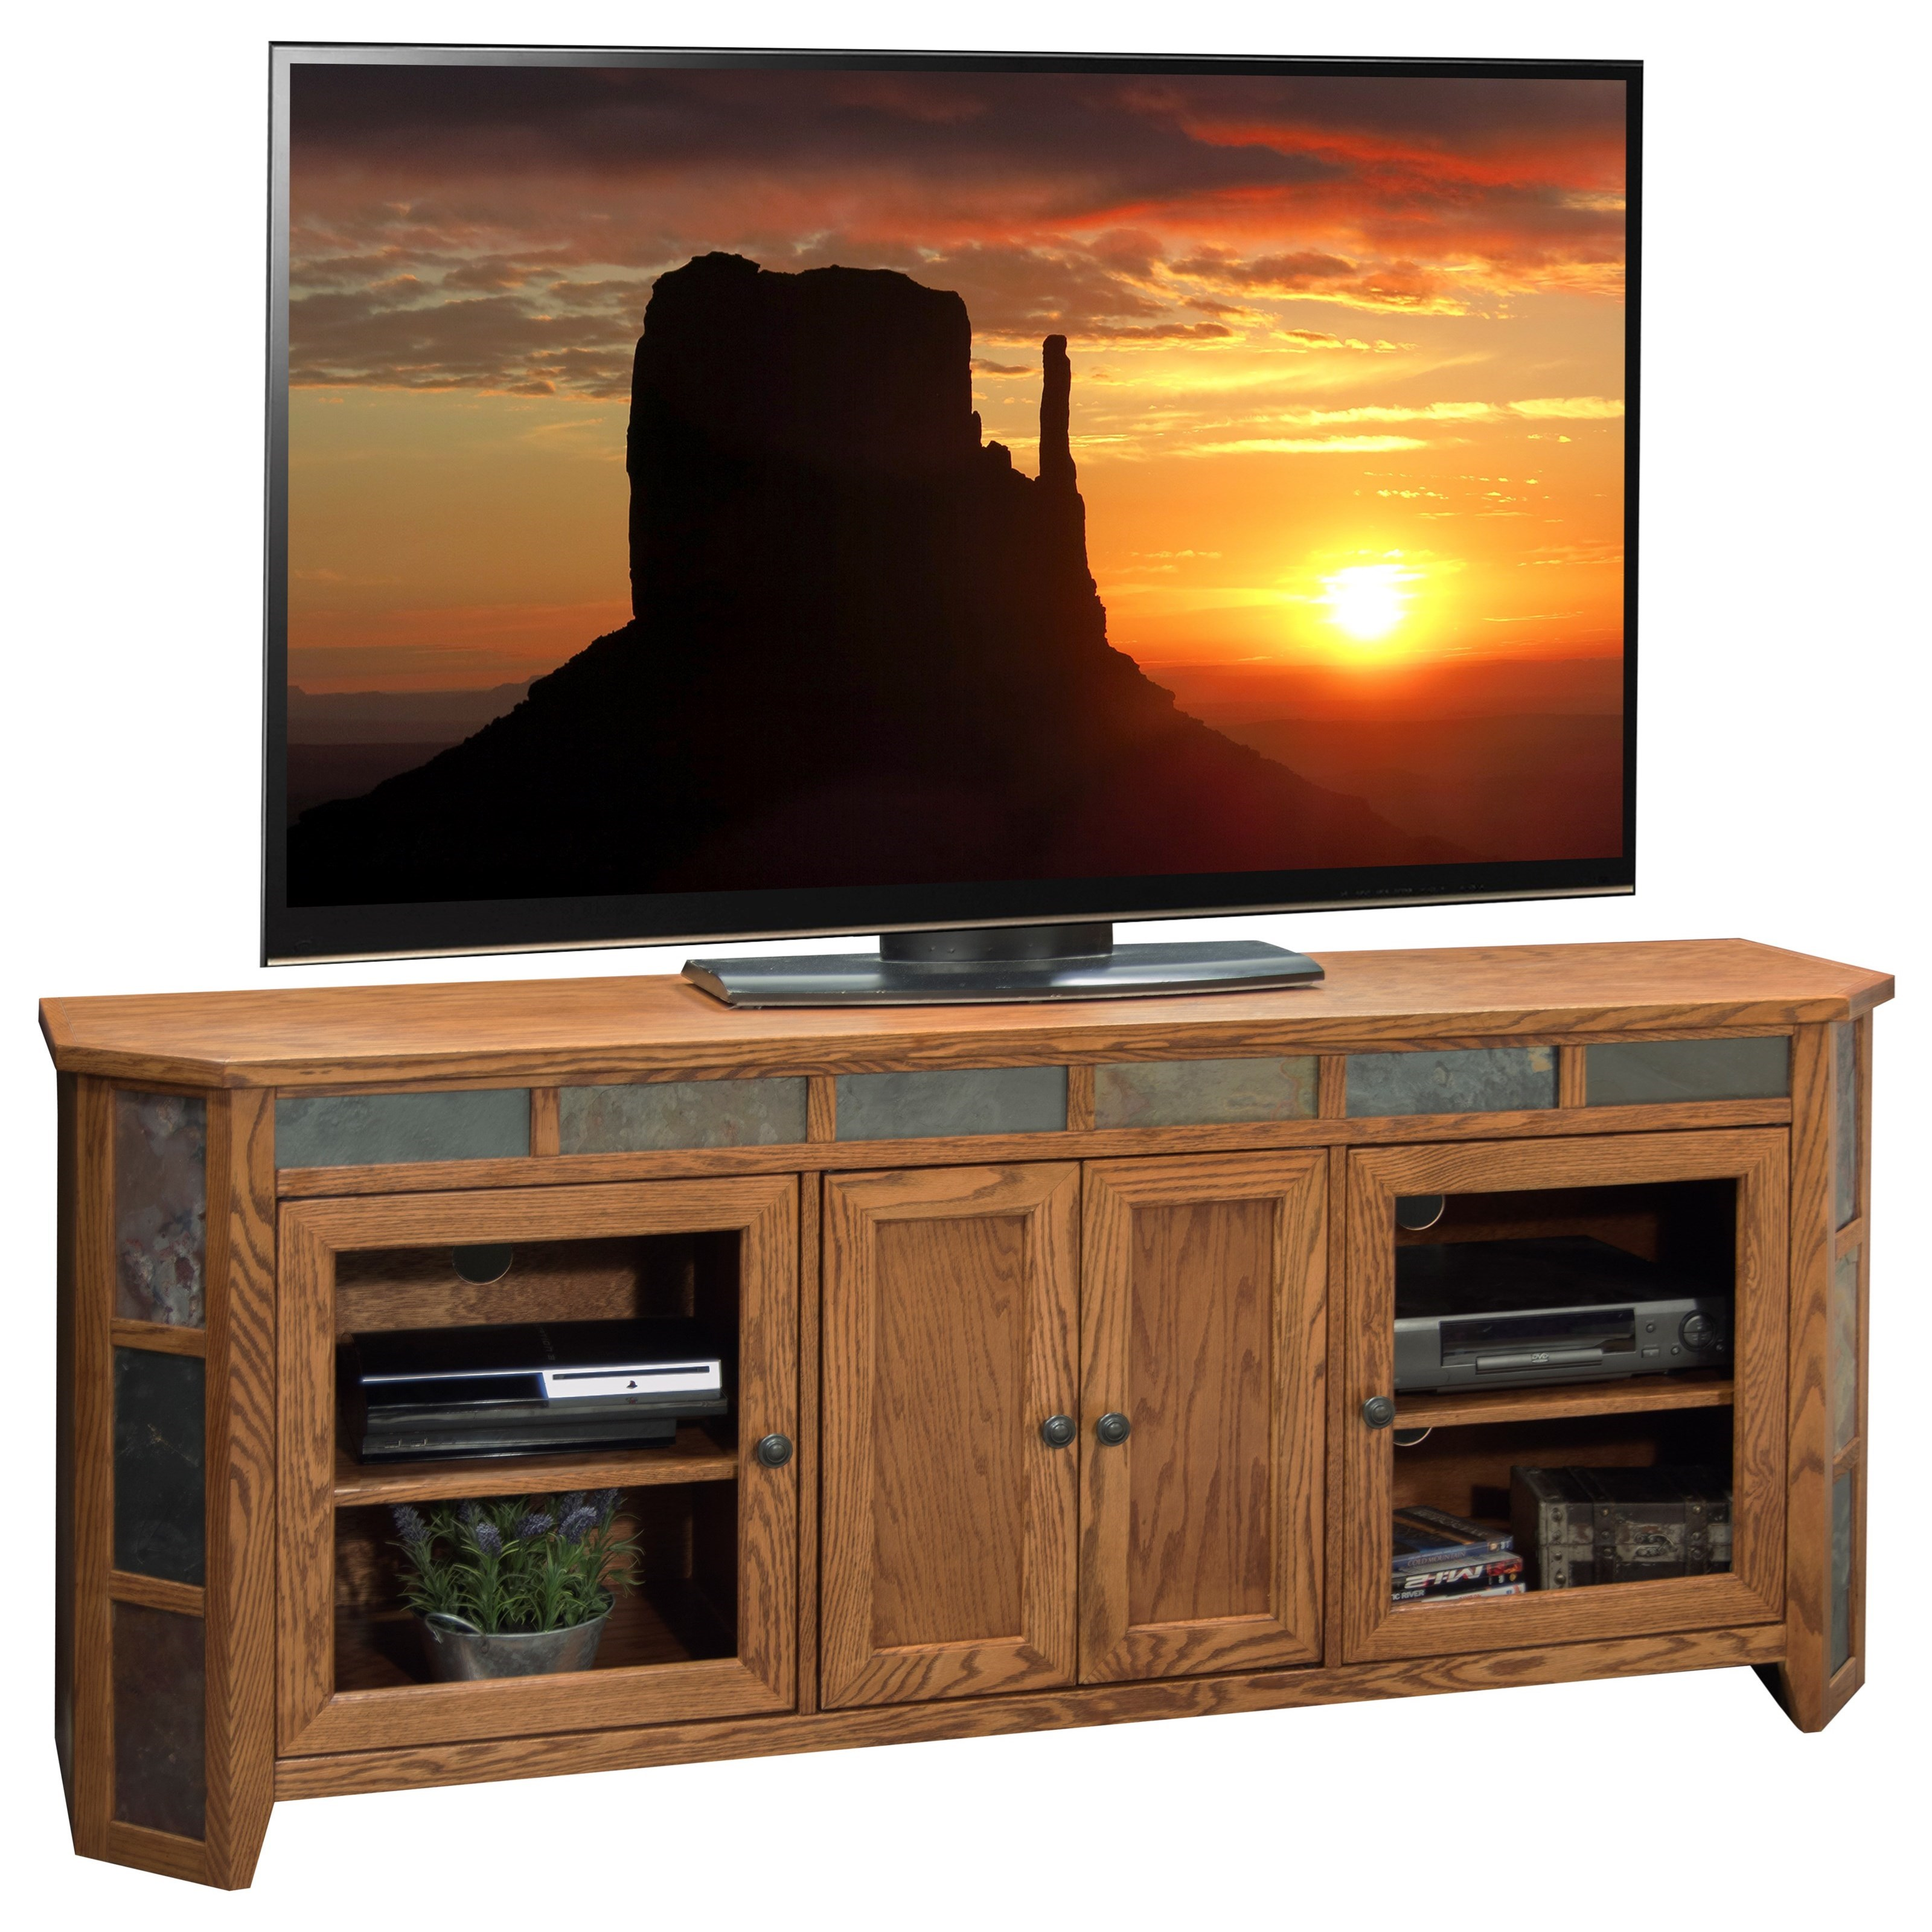 Vendor 1356 Oak Creek 72 Inch TV Console - Item Number: OC1256.GDO